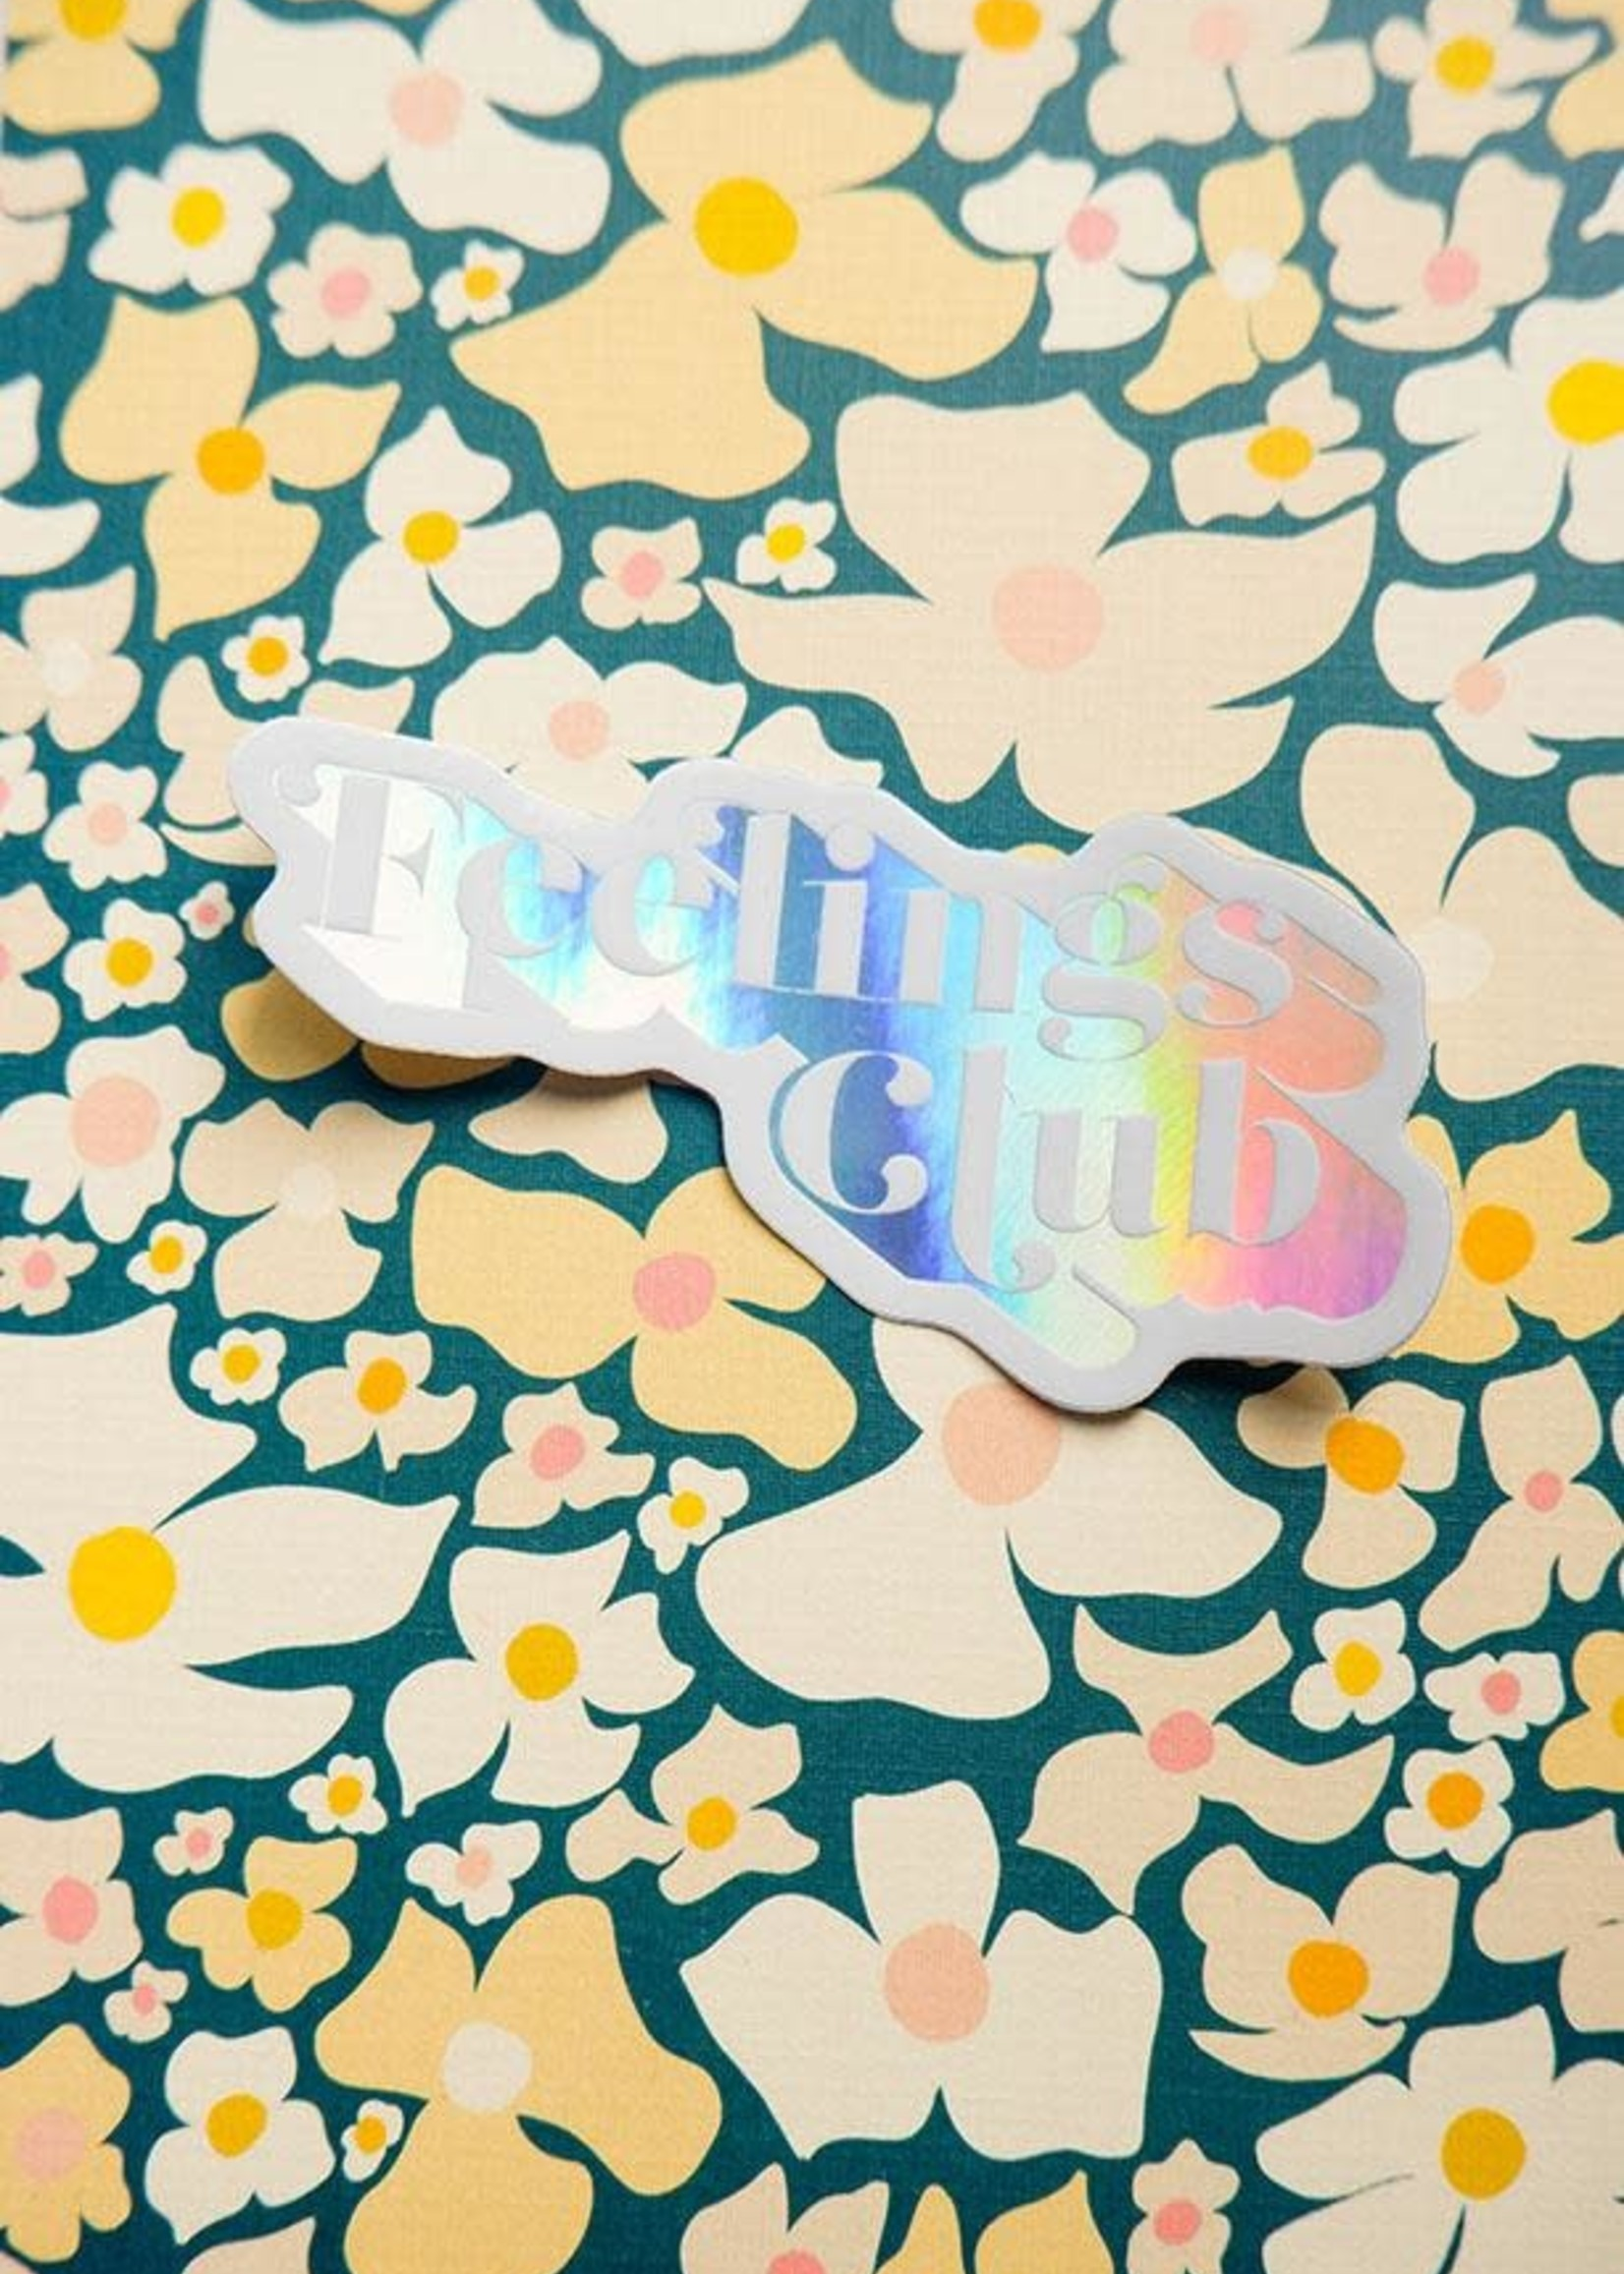 One & Only Paper Feelings Club Holographic Sticker